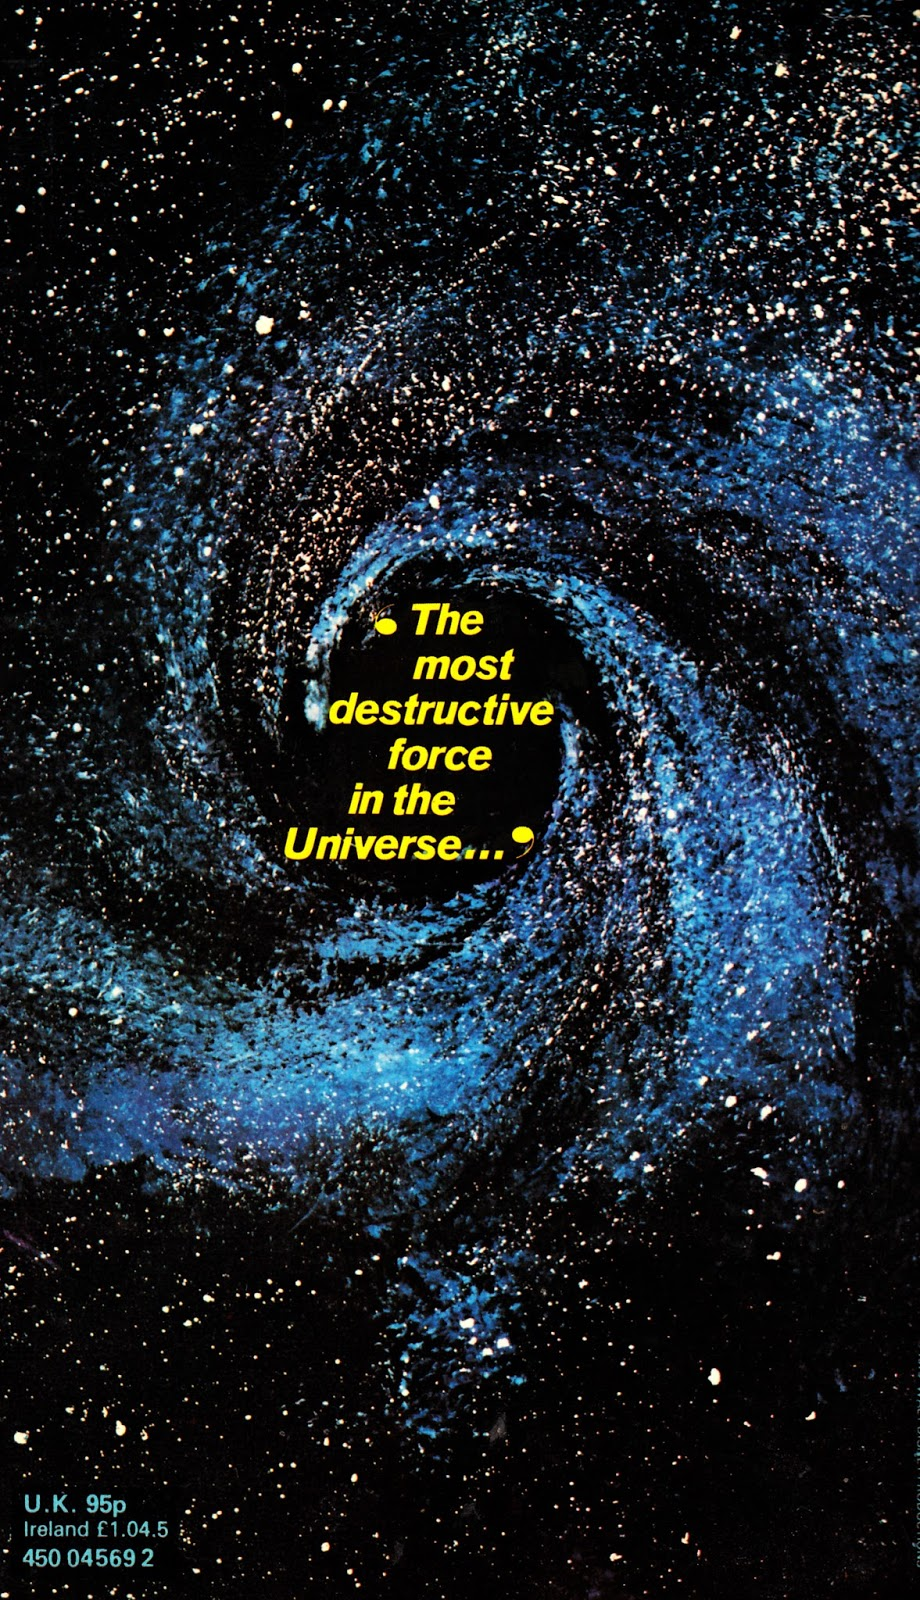 STARLOGGED - GEEK MEDIA AGAIN: 1979: THE BLACK HOLE Movie ...